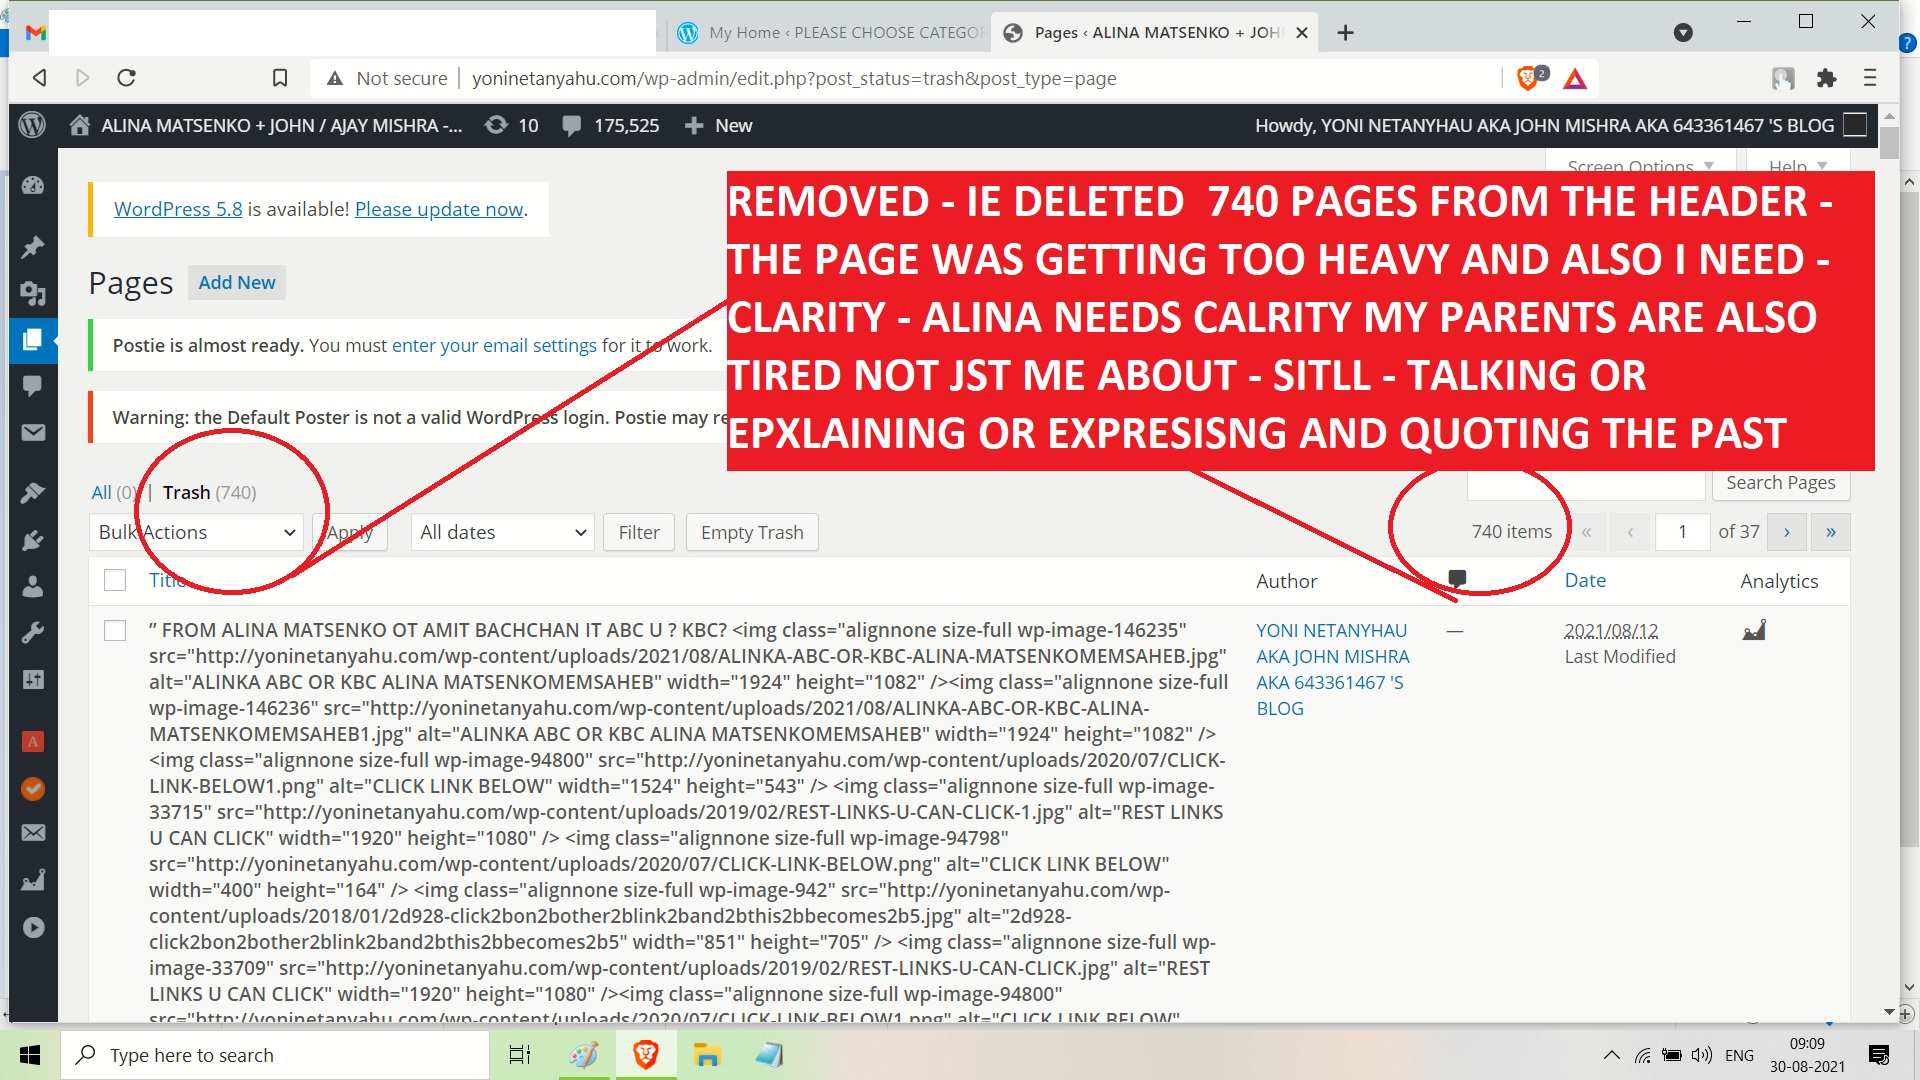 REMOVED - IE DELETED 740 PAGES THE PAGE WAS GETTING TOO HEAVY AND ALSO I NEED - CLARITY - ALINA NEEDS CALRITY MY PARENTS ARE ALSO TIRED NOT JST ME ABOUT - SITLL - TALKING OR EPXLAI